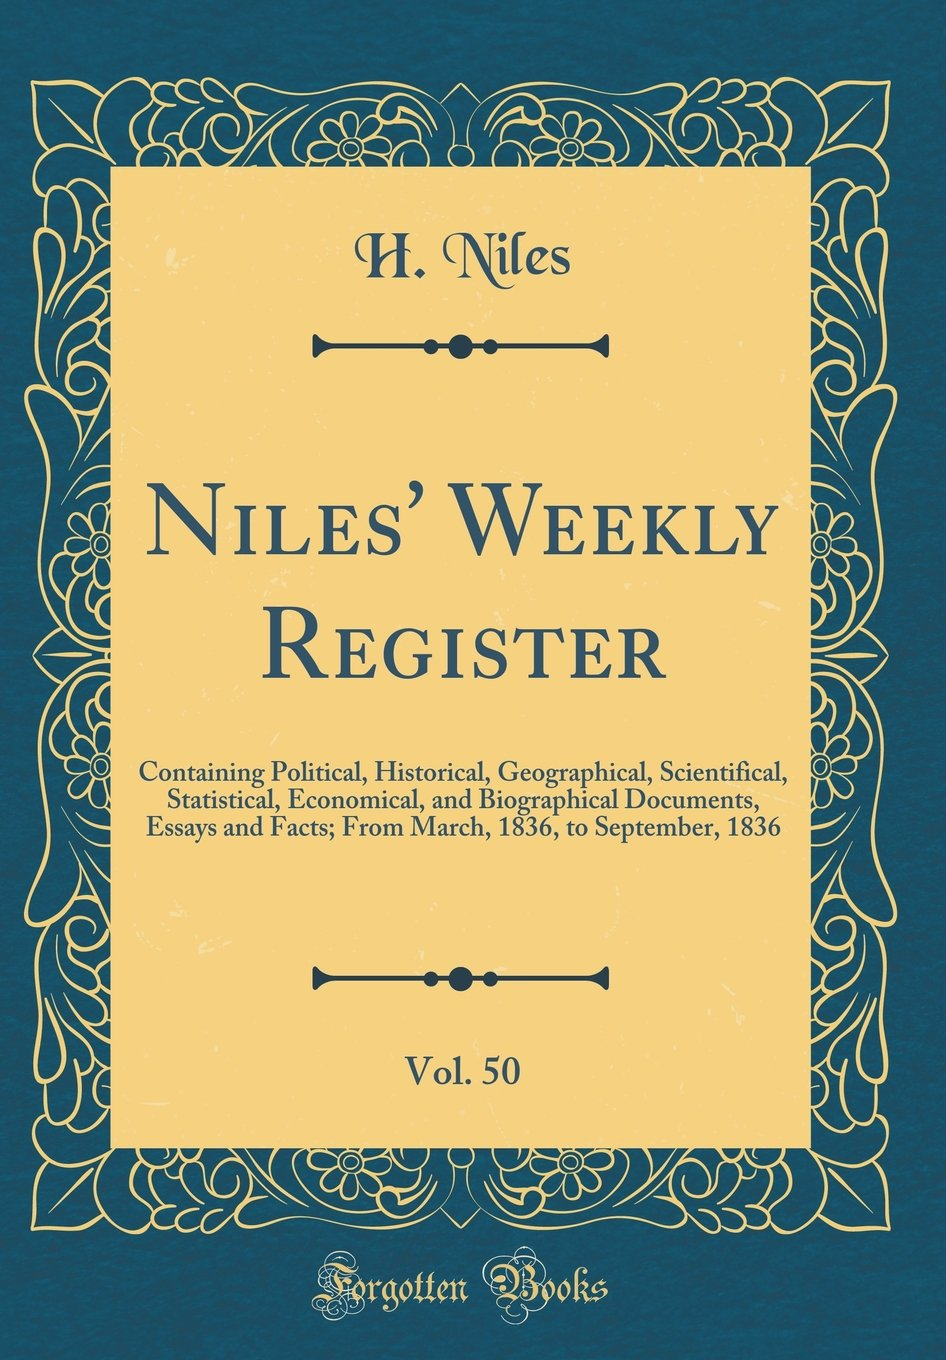 Download Niles' Weekly Register, Vol. 50: Containing Political, Historical, Geographical, Scientifical, Statistical, Economical, and Biographical Documents, ... 1836, to September, 1836 (Classic Reprint) PDF